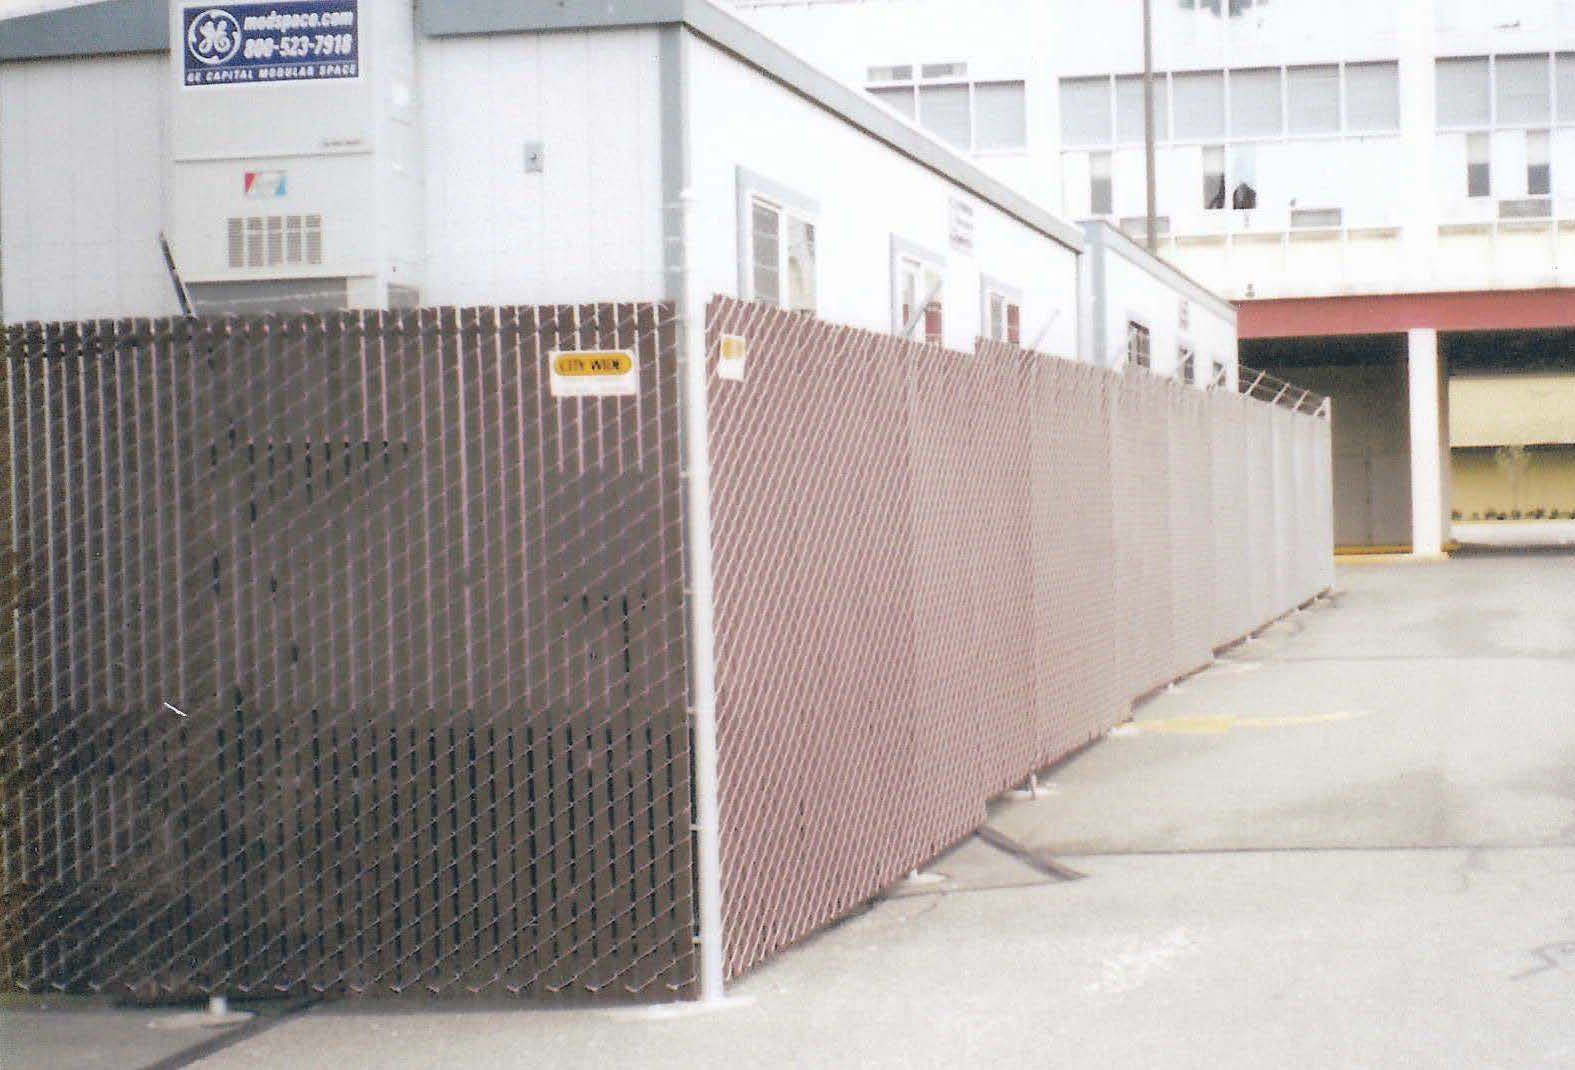 Brown Viewguard City Wide Fence 206 763 8282 Fence Chainlink Chainlinkfence Fencecompany Seattlefence Lynnwoodf Kirklands Vinyl Fence Chain Link Fence